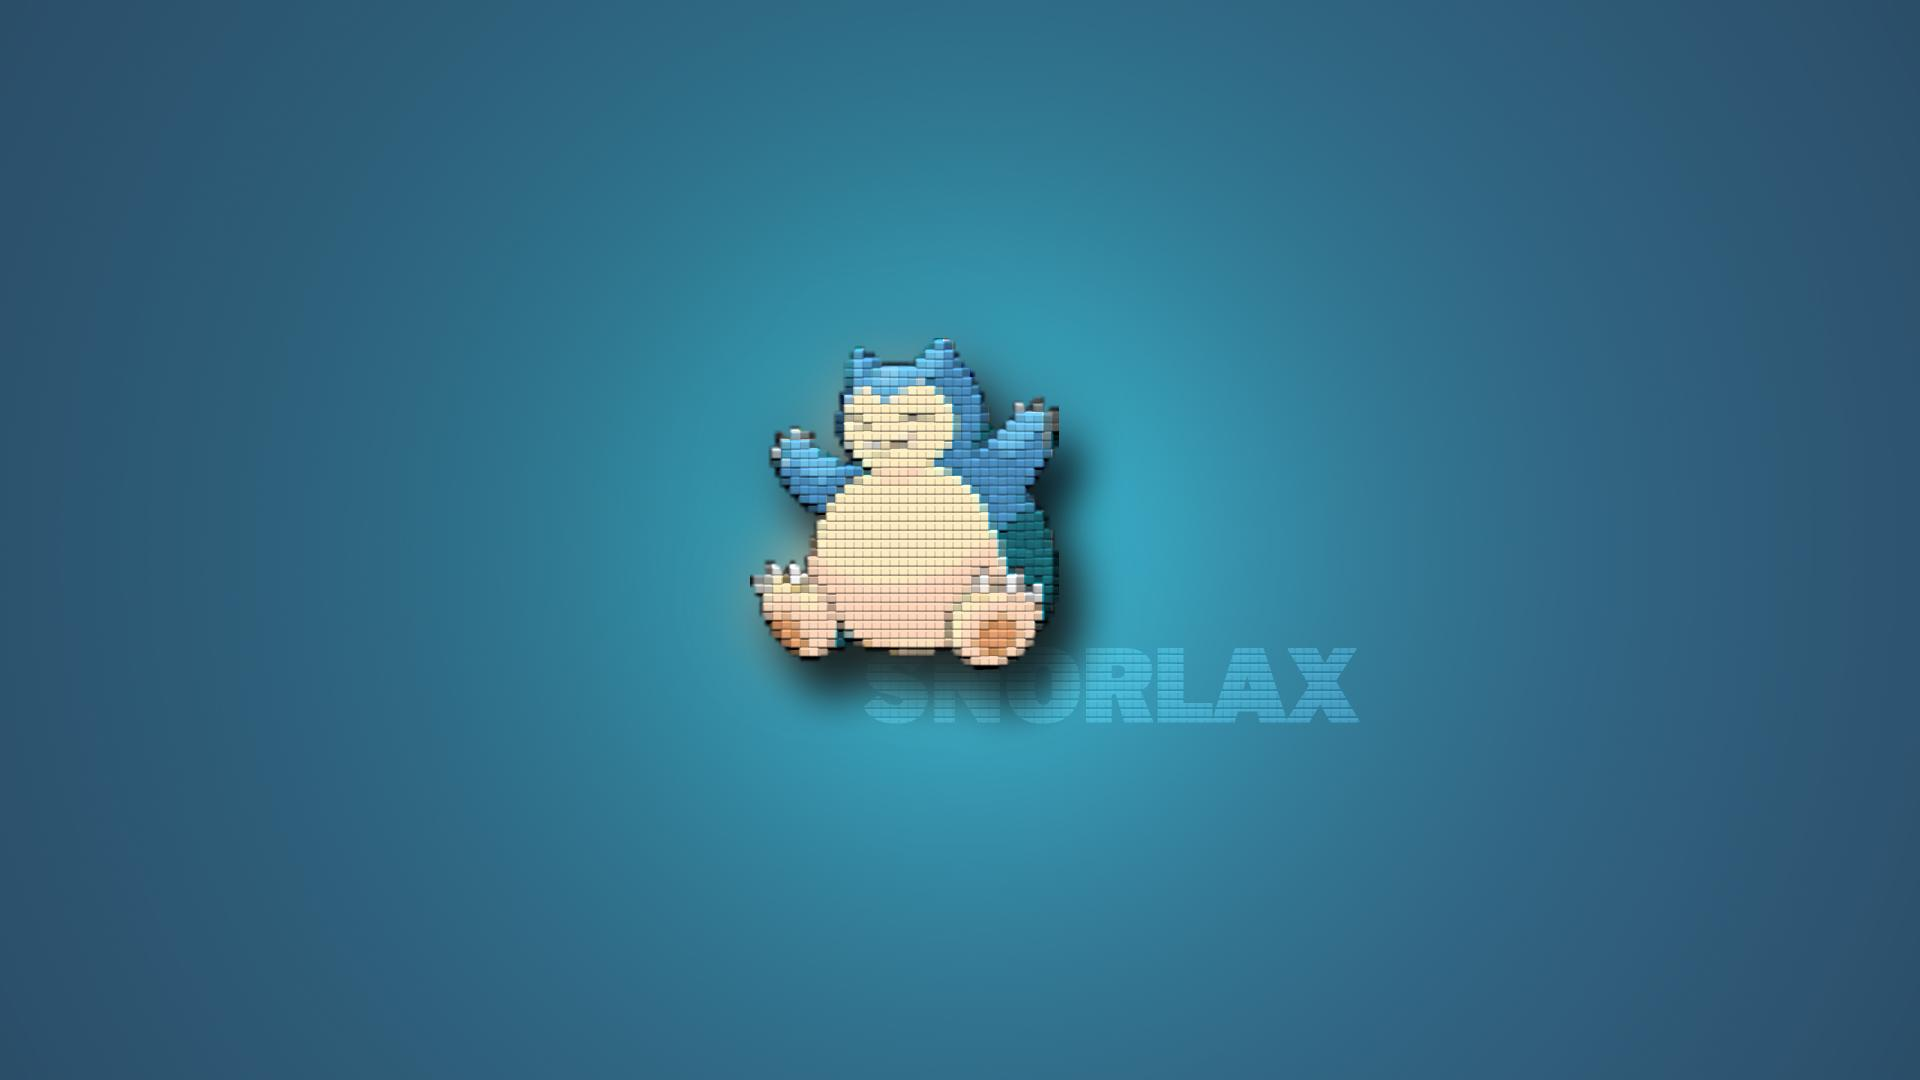 Snorlax Wallpaper Made by Me   Imgur 1920x1080